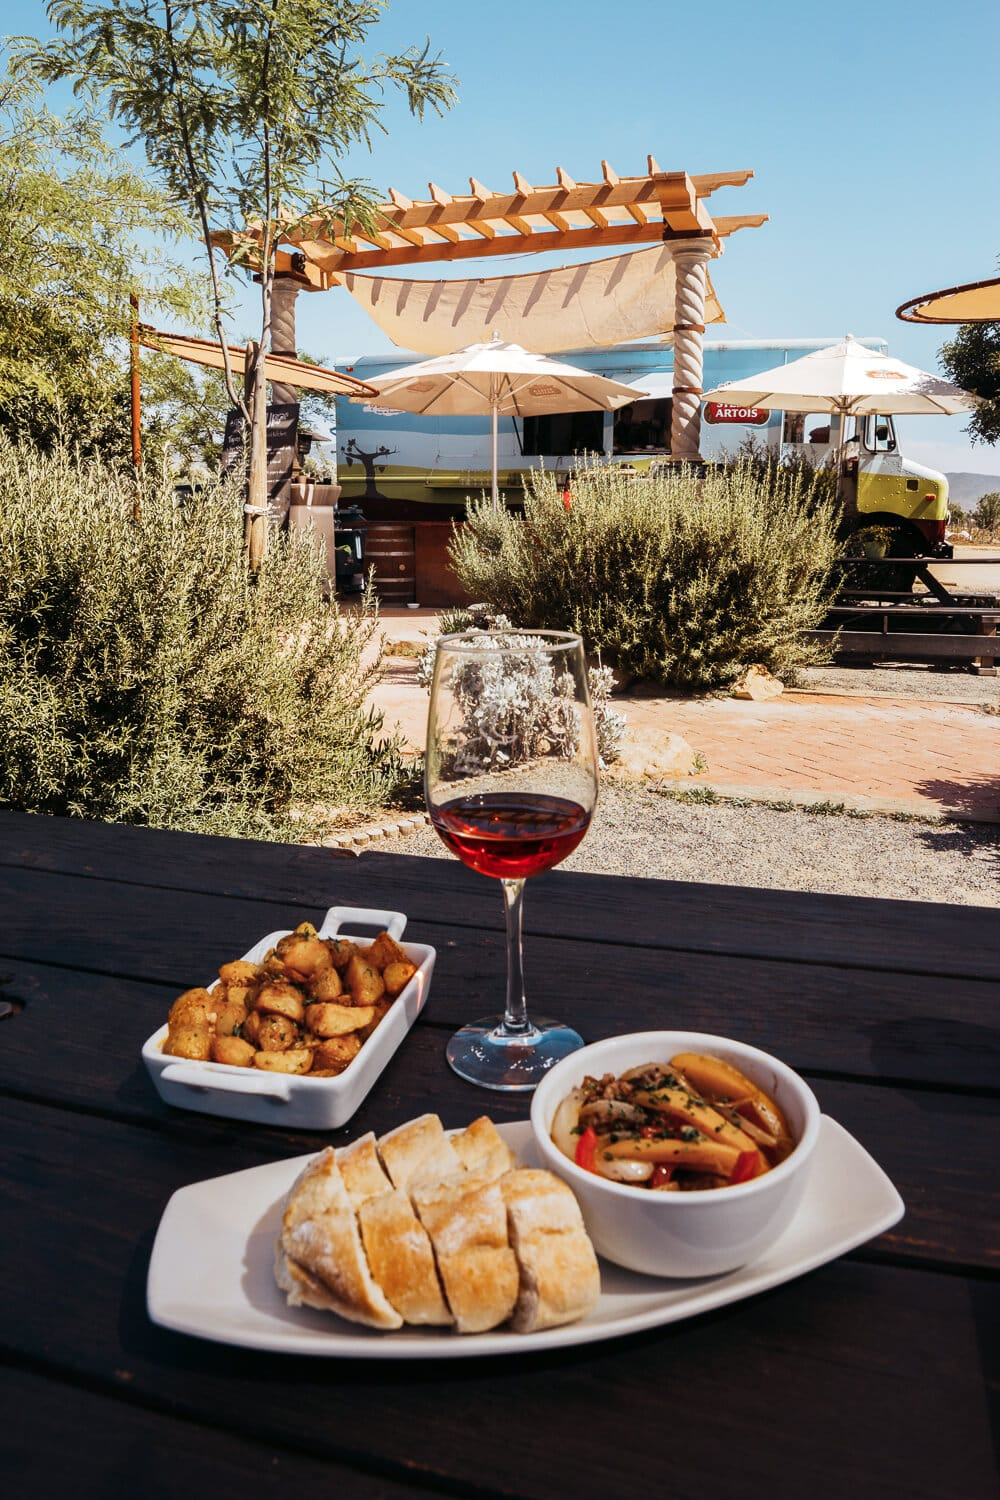 Adobe Guadalupe | Valle de Guadalupe is one of the most up and coming wine regions in the world. From it's innovative designs, picturesque views and award winning wines, keep reading to discover which Valle de Guadalupe wineries you shouldn't miss while in Baja California, Mexico.